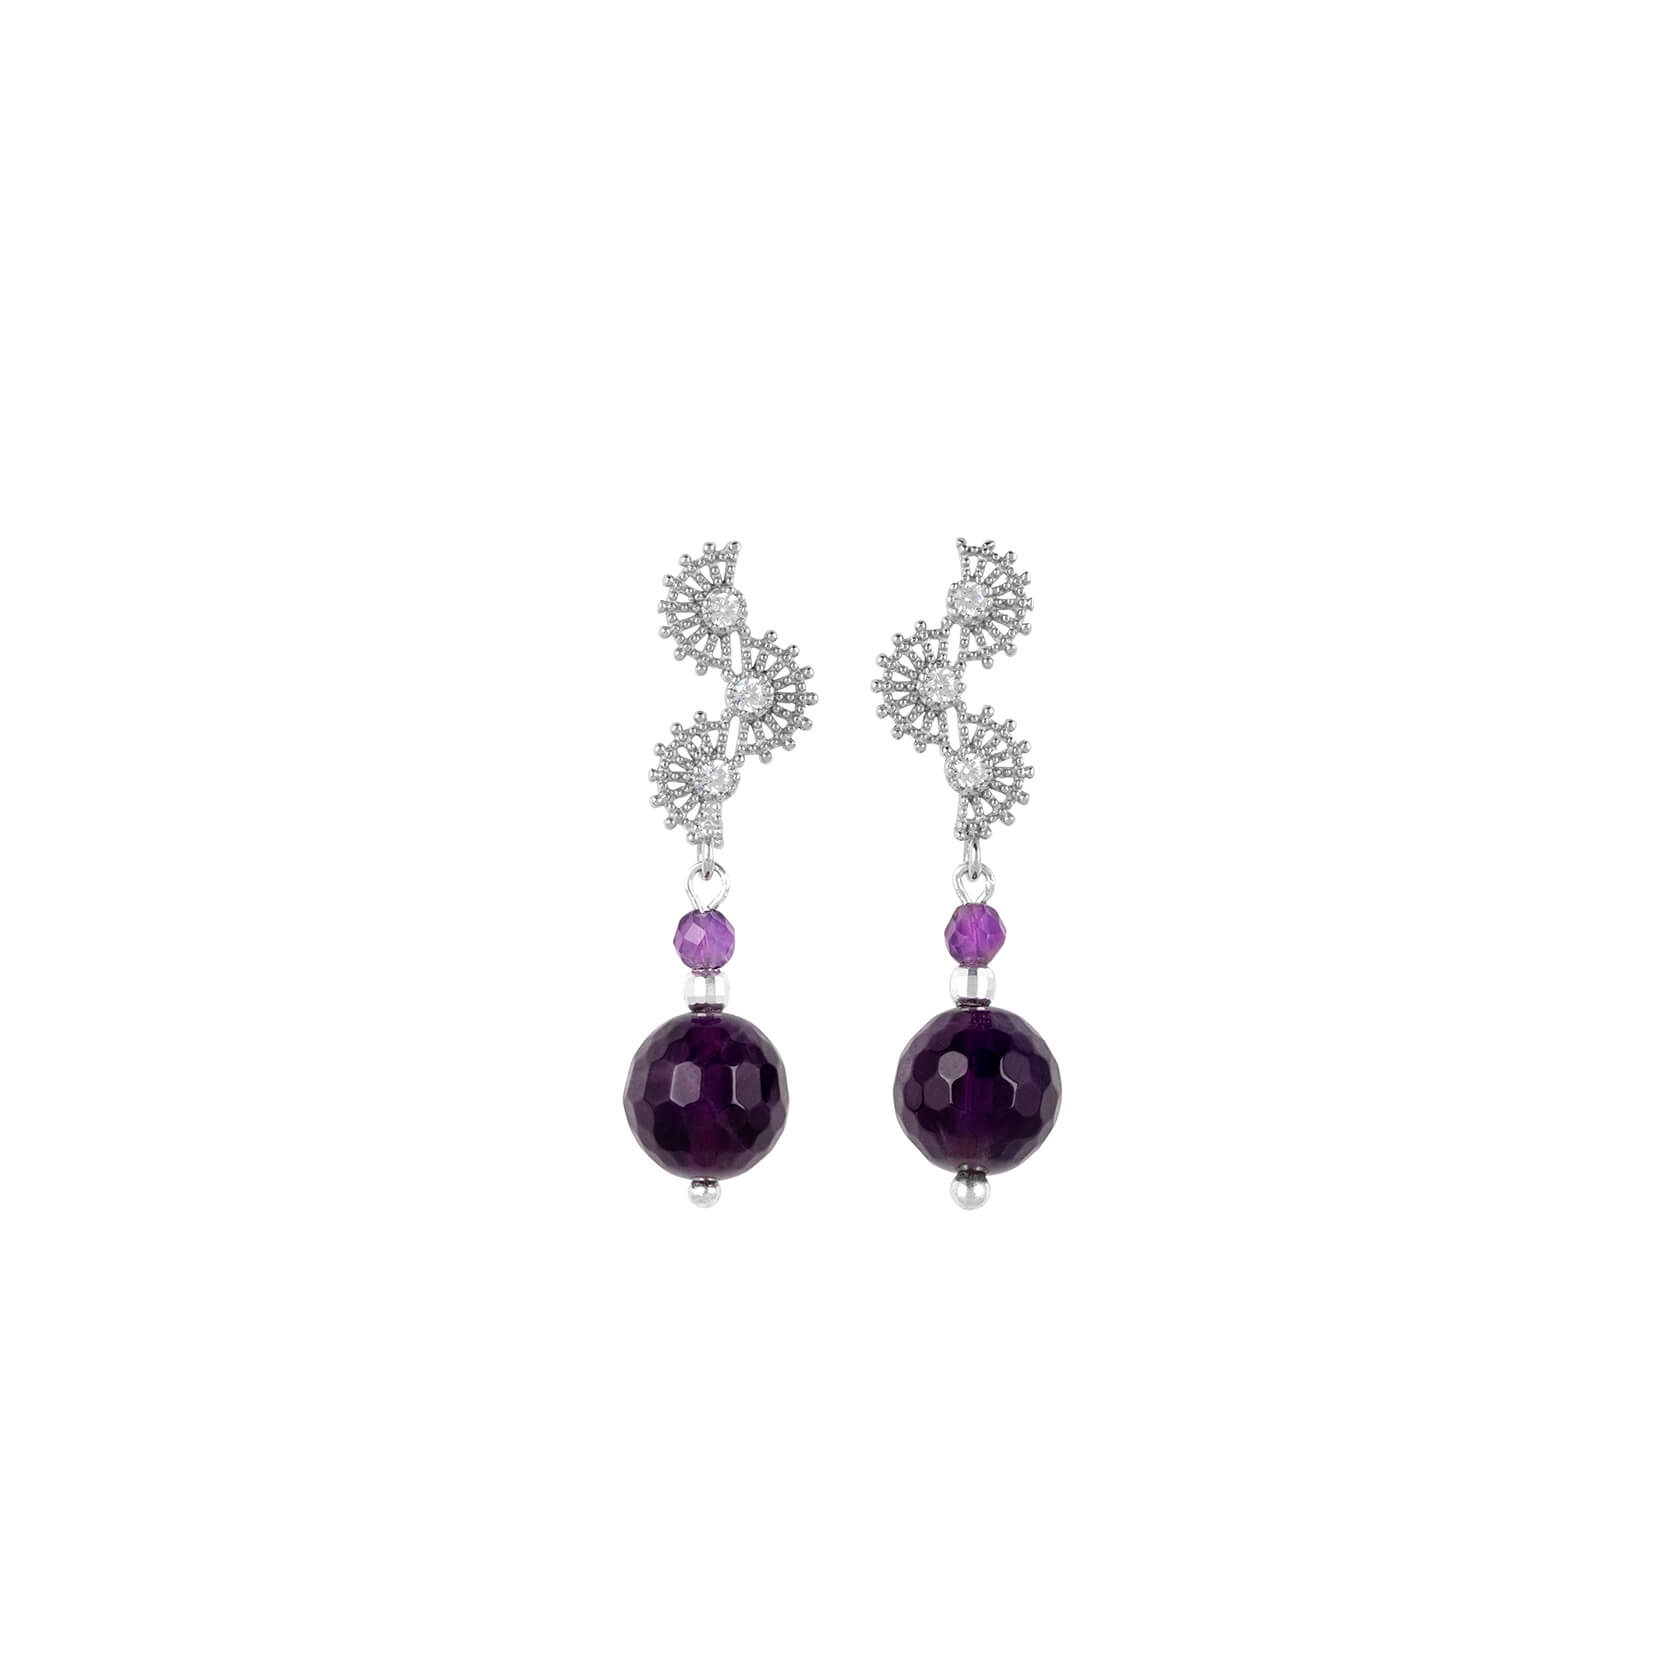 Long amethyst earrings with silver